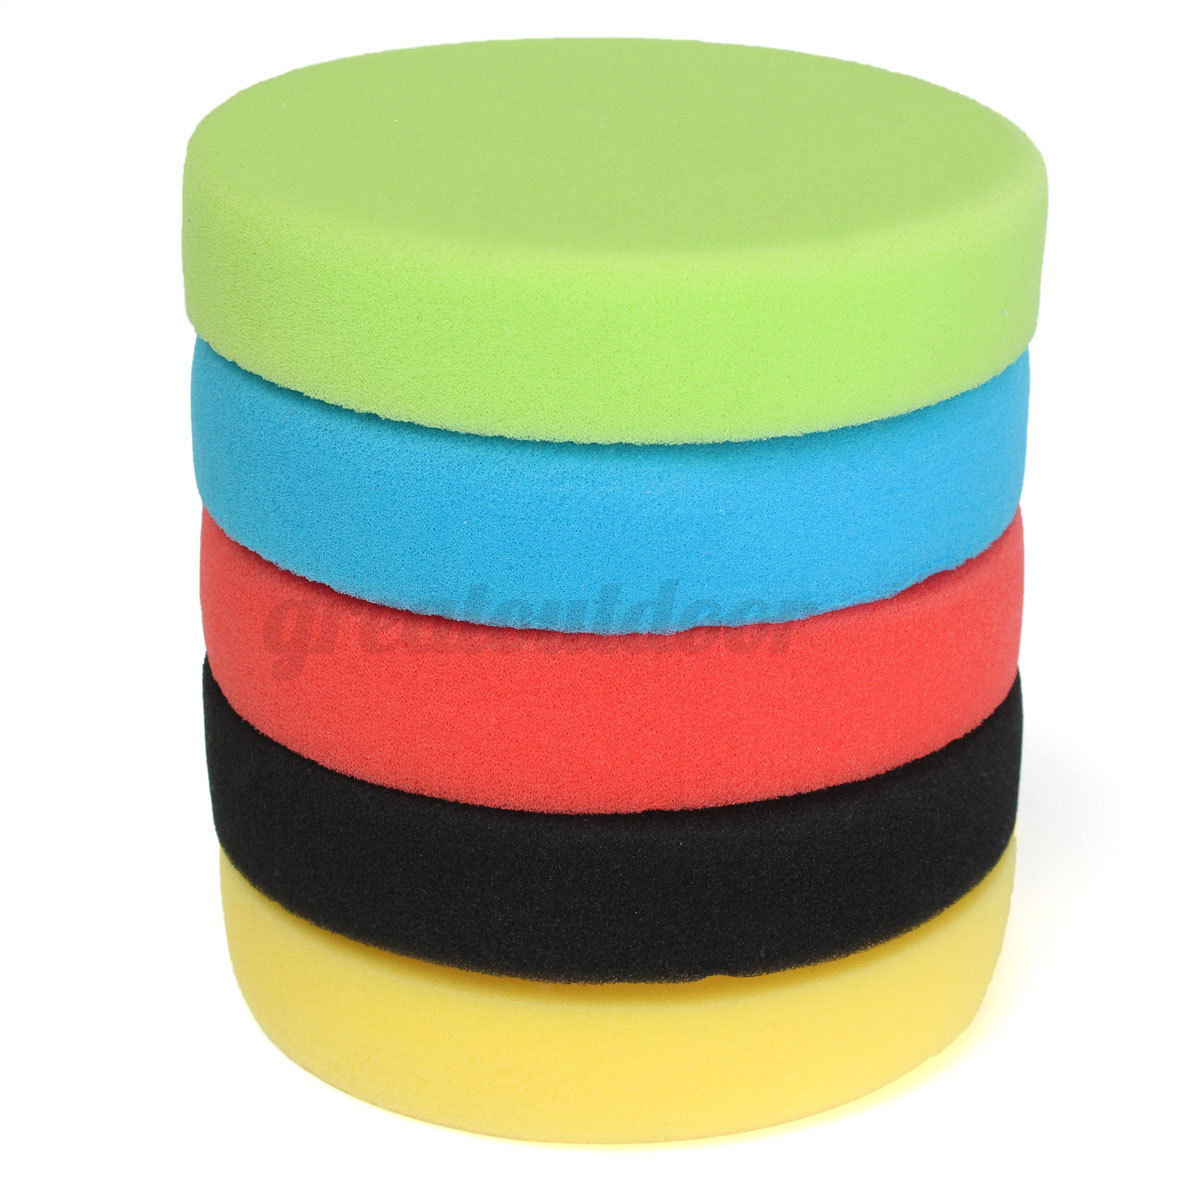 5Pcs 6 Inch Flat Sponge Buff Buffing Pad Polishing Pad Car